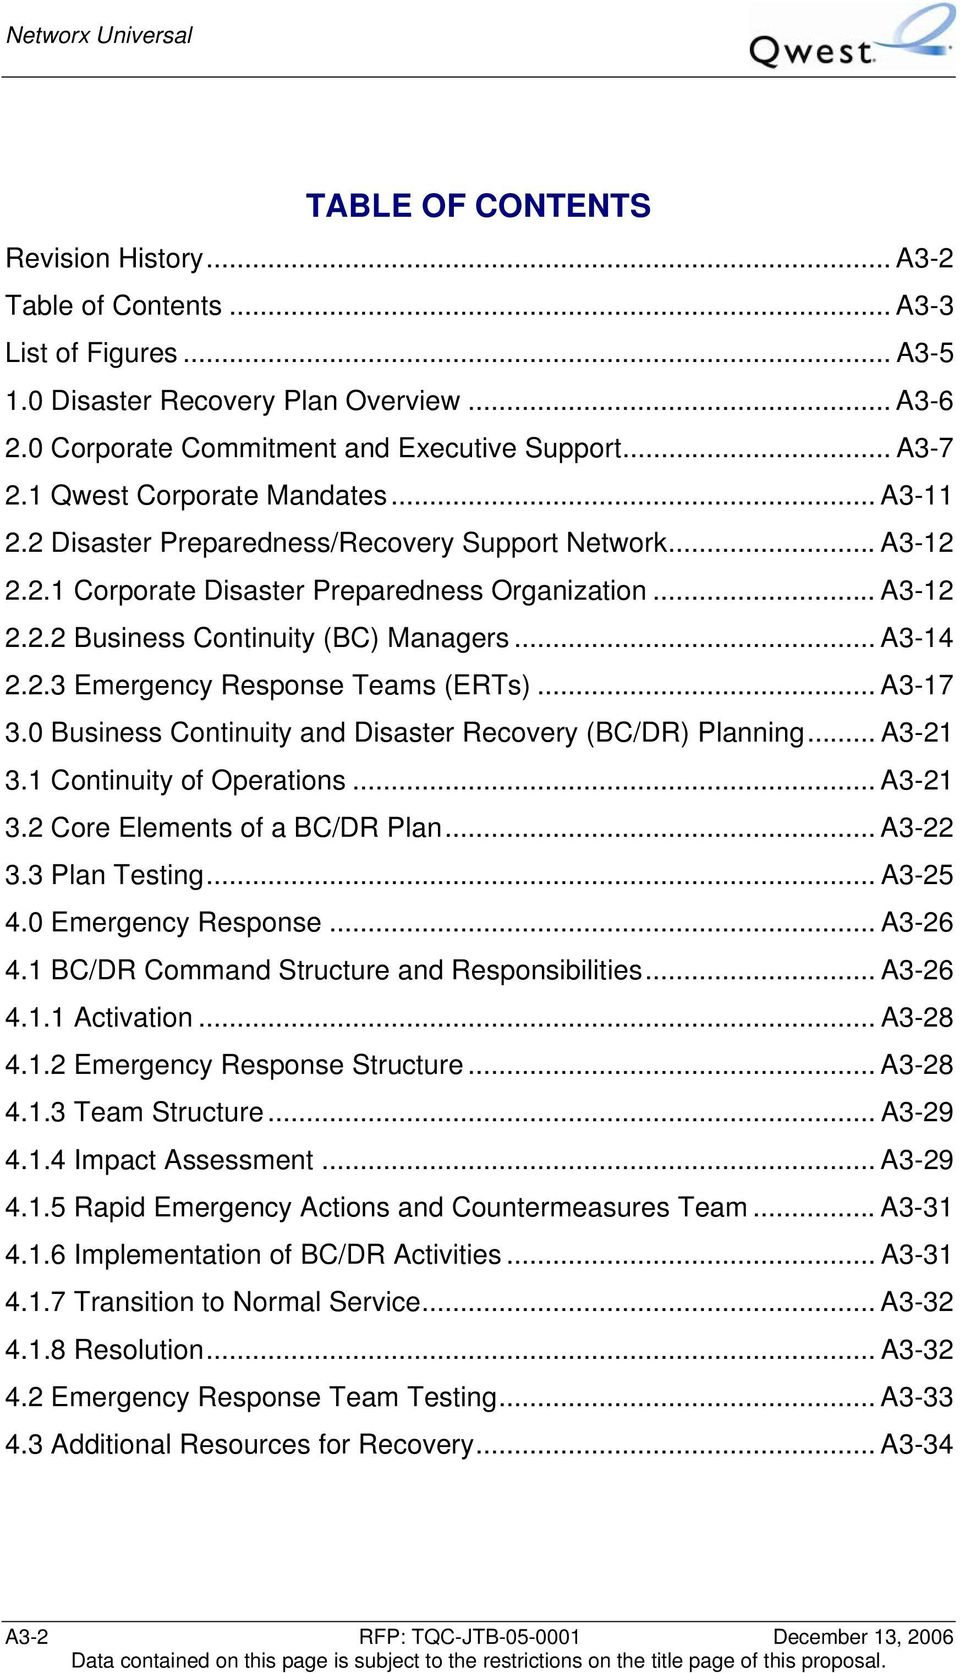 .. A3-14 2.2.3 Emergency Response Teams (ERTs)... A3-17 3.0 Business Continuity and Disaster Recovery (BC/DR) Planning... A3-21 3.1 Continuity of Operations... A3-21 3.2 Core Elements of a BC/DR Plan.